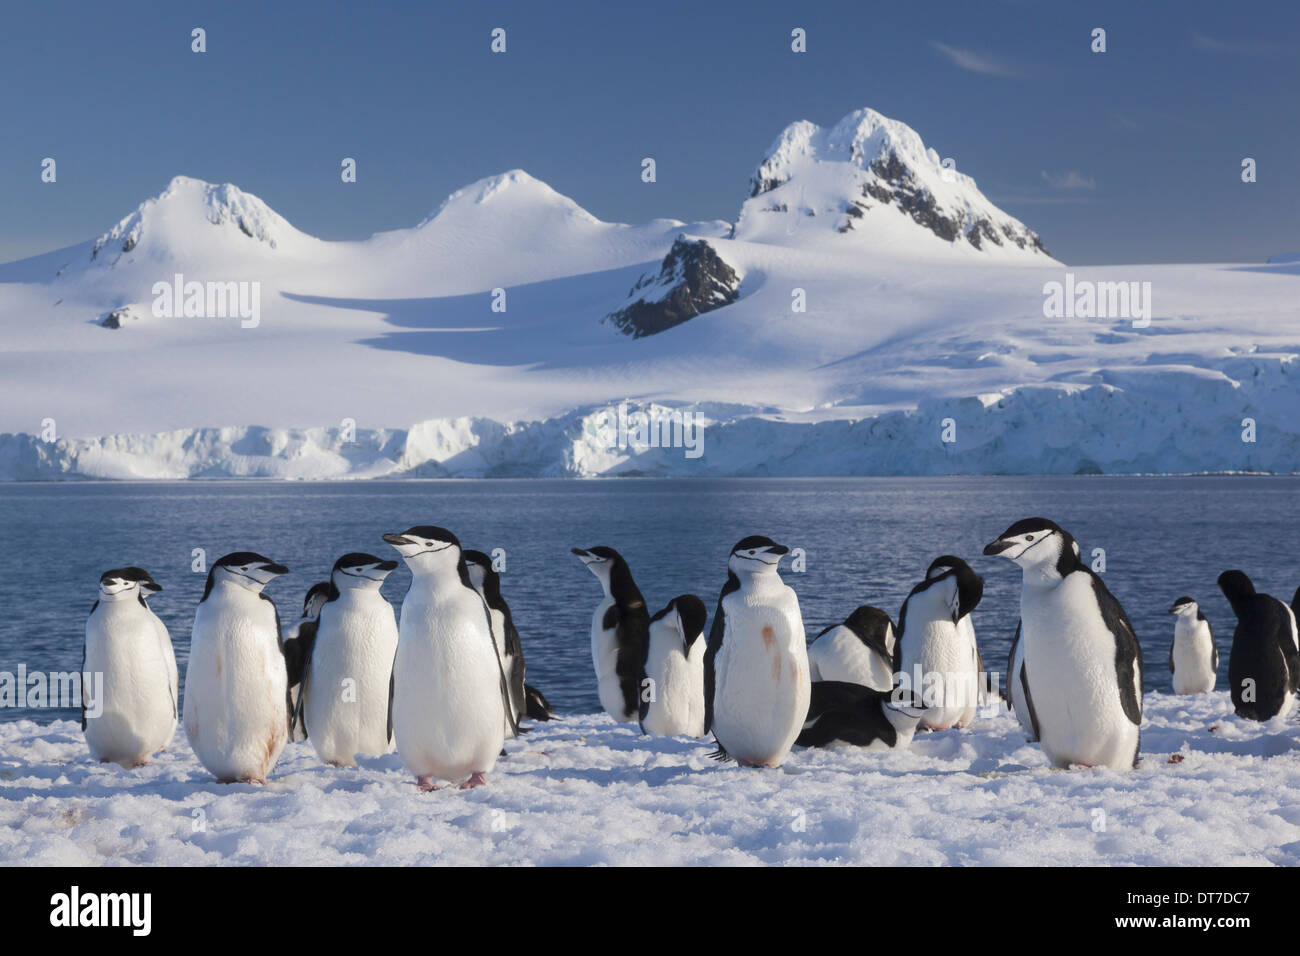 hawaii map with Stock Photo Chinstrap Penguins On Half Moon Island In The South Shetland Islands 66547047 on 305 likewise 16406961745 besides File European union emu map zh hant in addition Tambora additionally File Clyde tributaries.